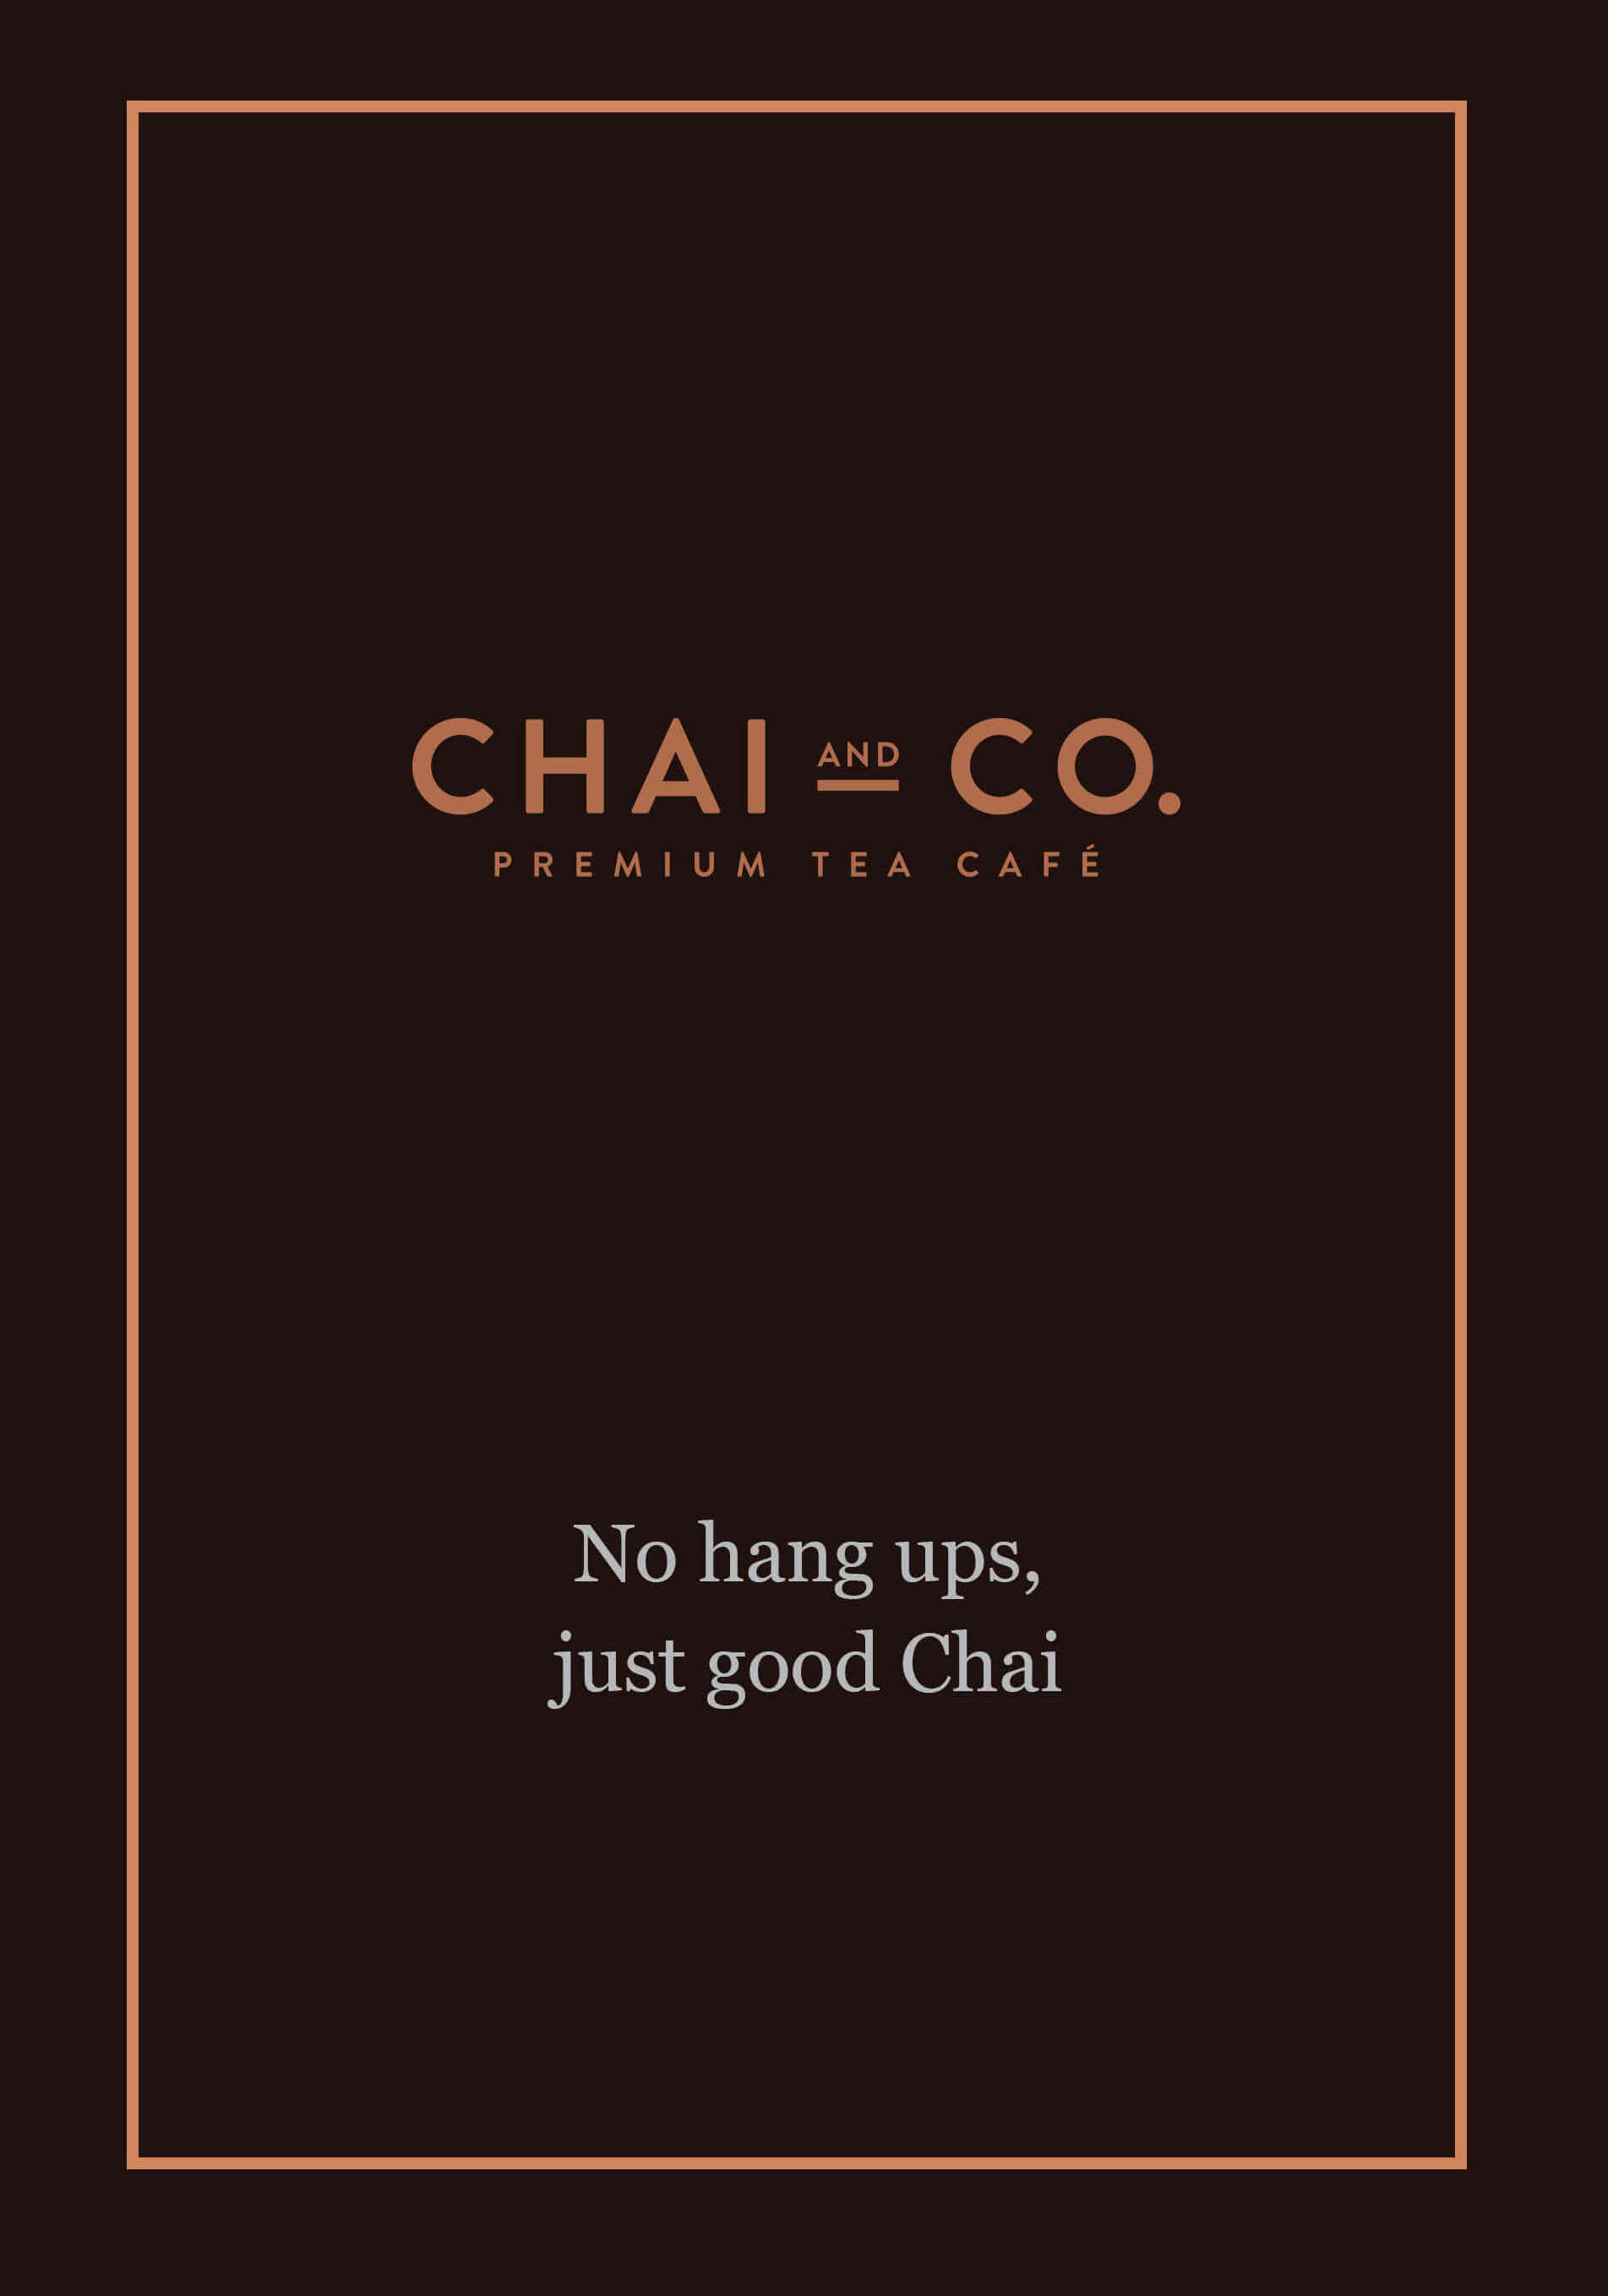 Chai and Co